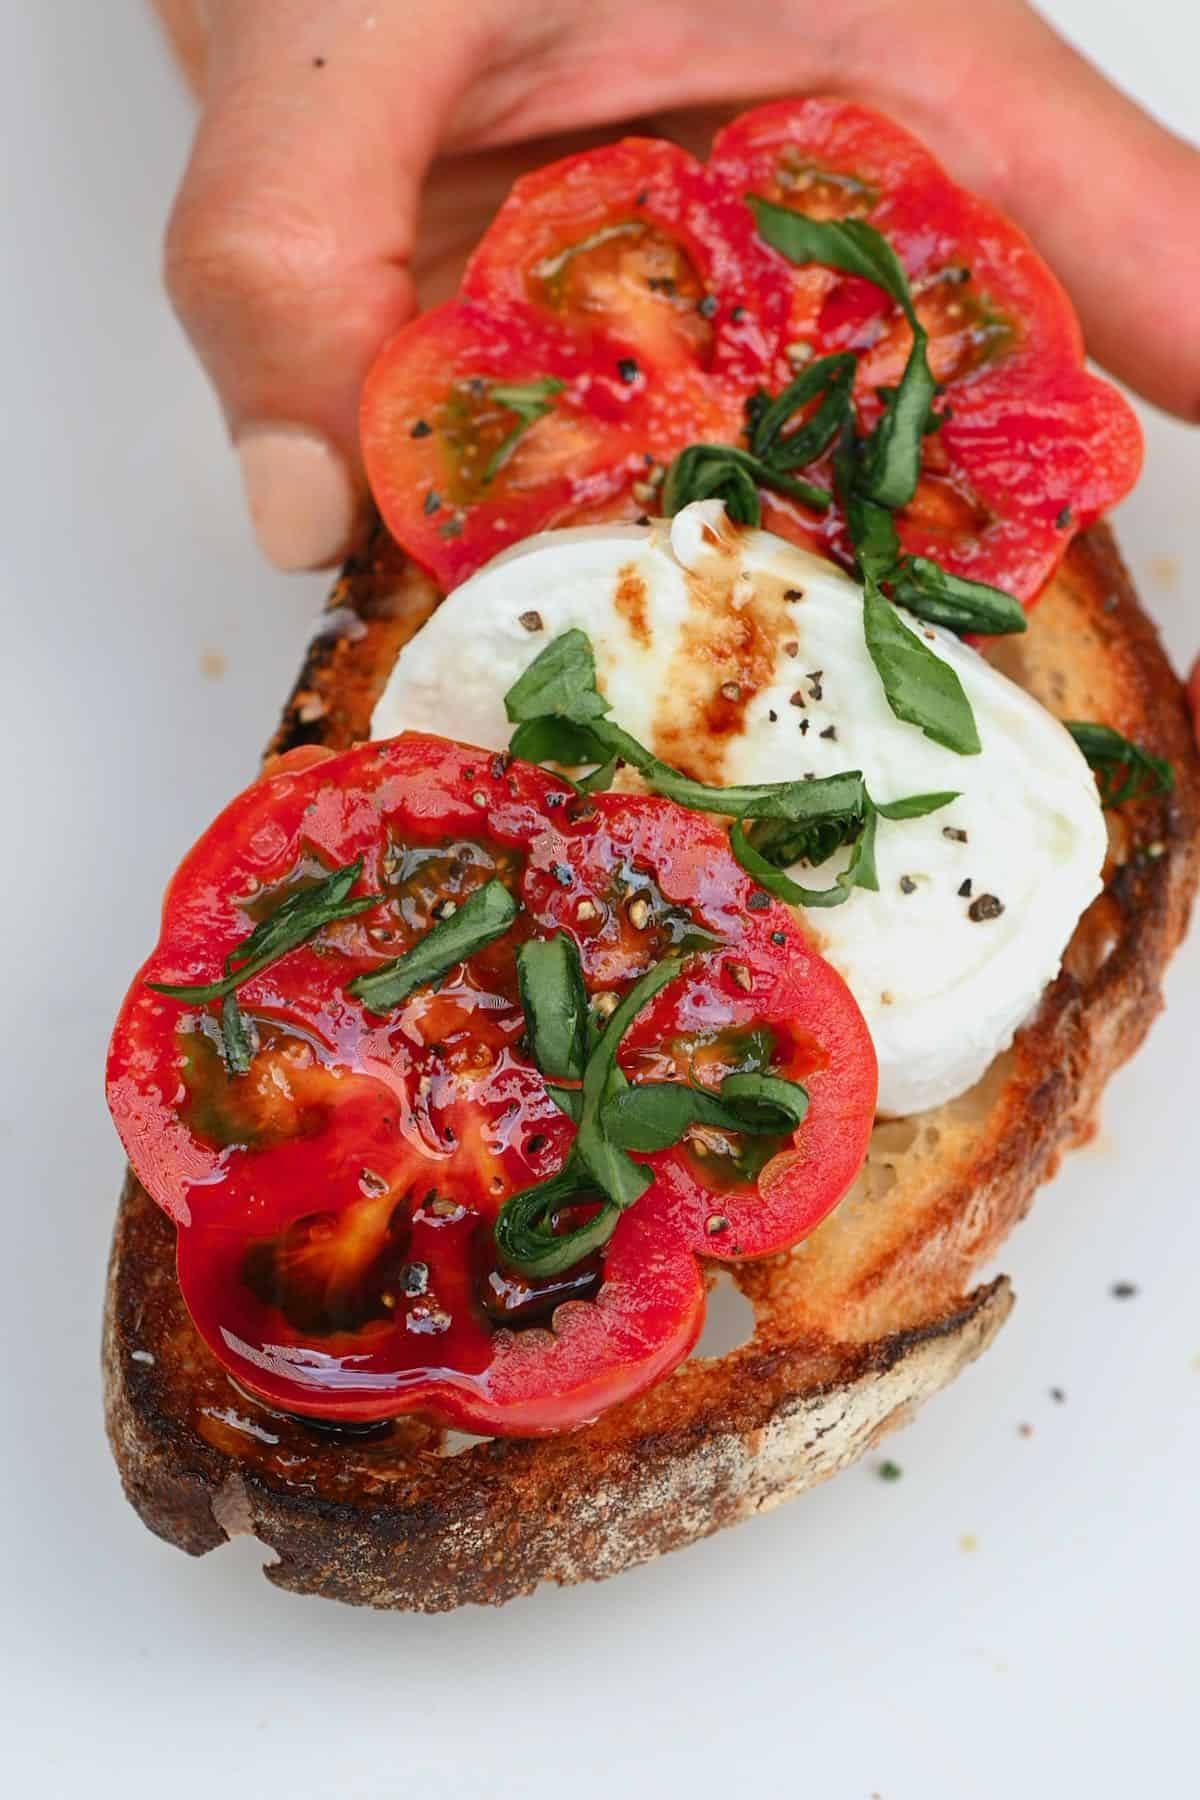 Caprese salad on top of a toasted slice of bread